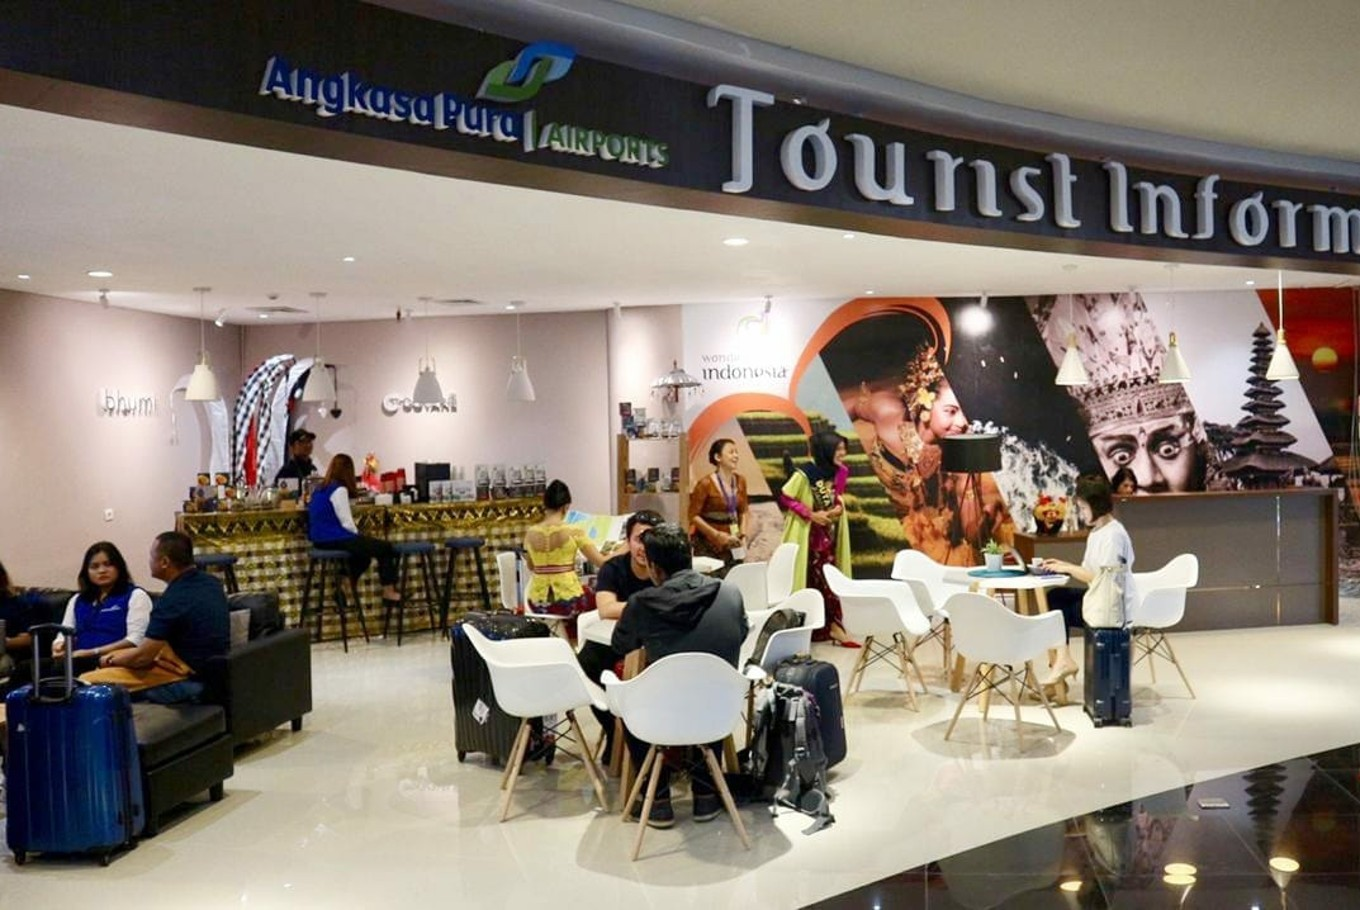 Information center, special facilities welcome delegates at Bali airport